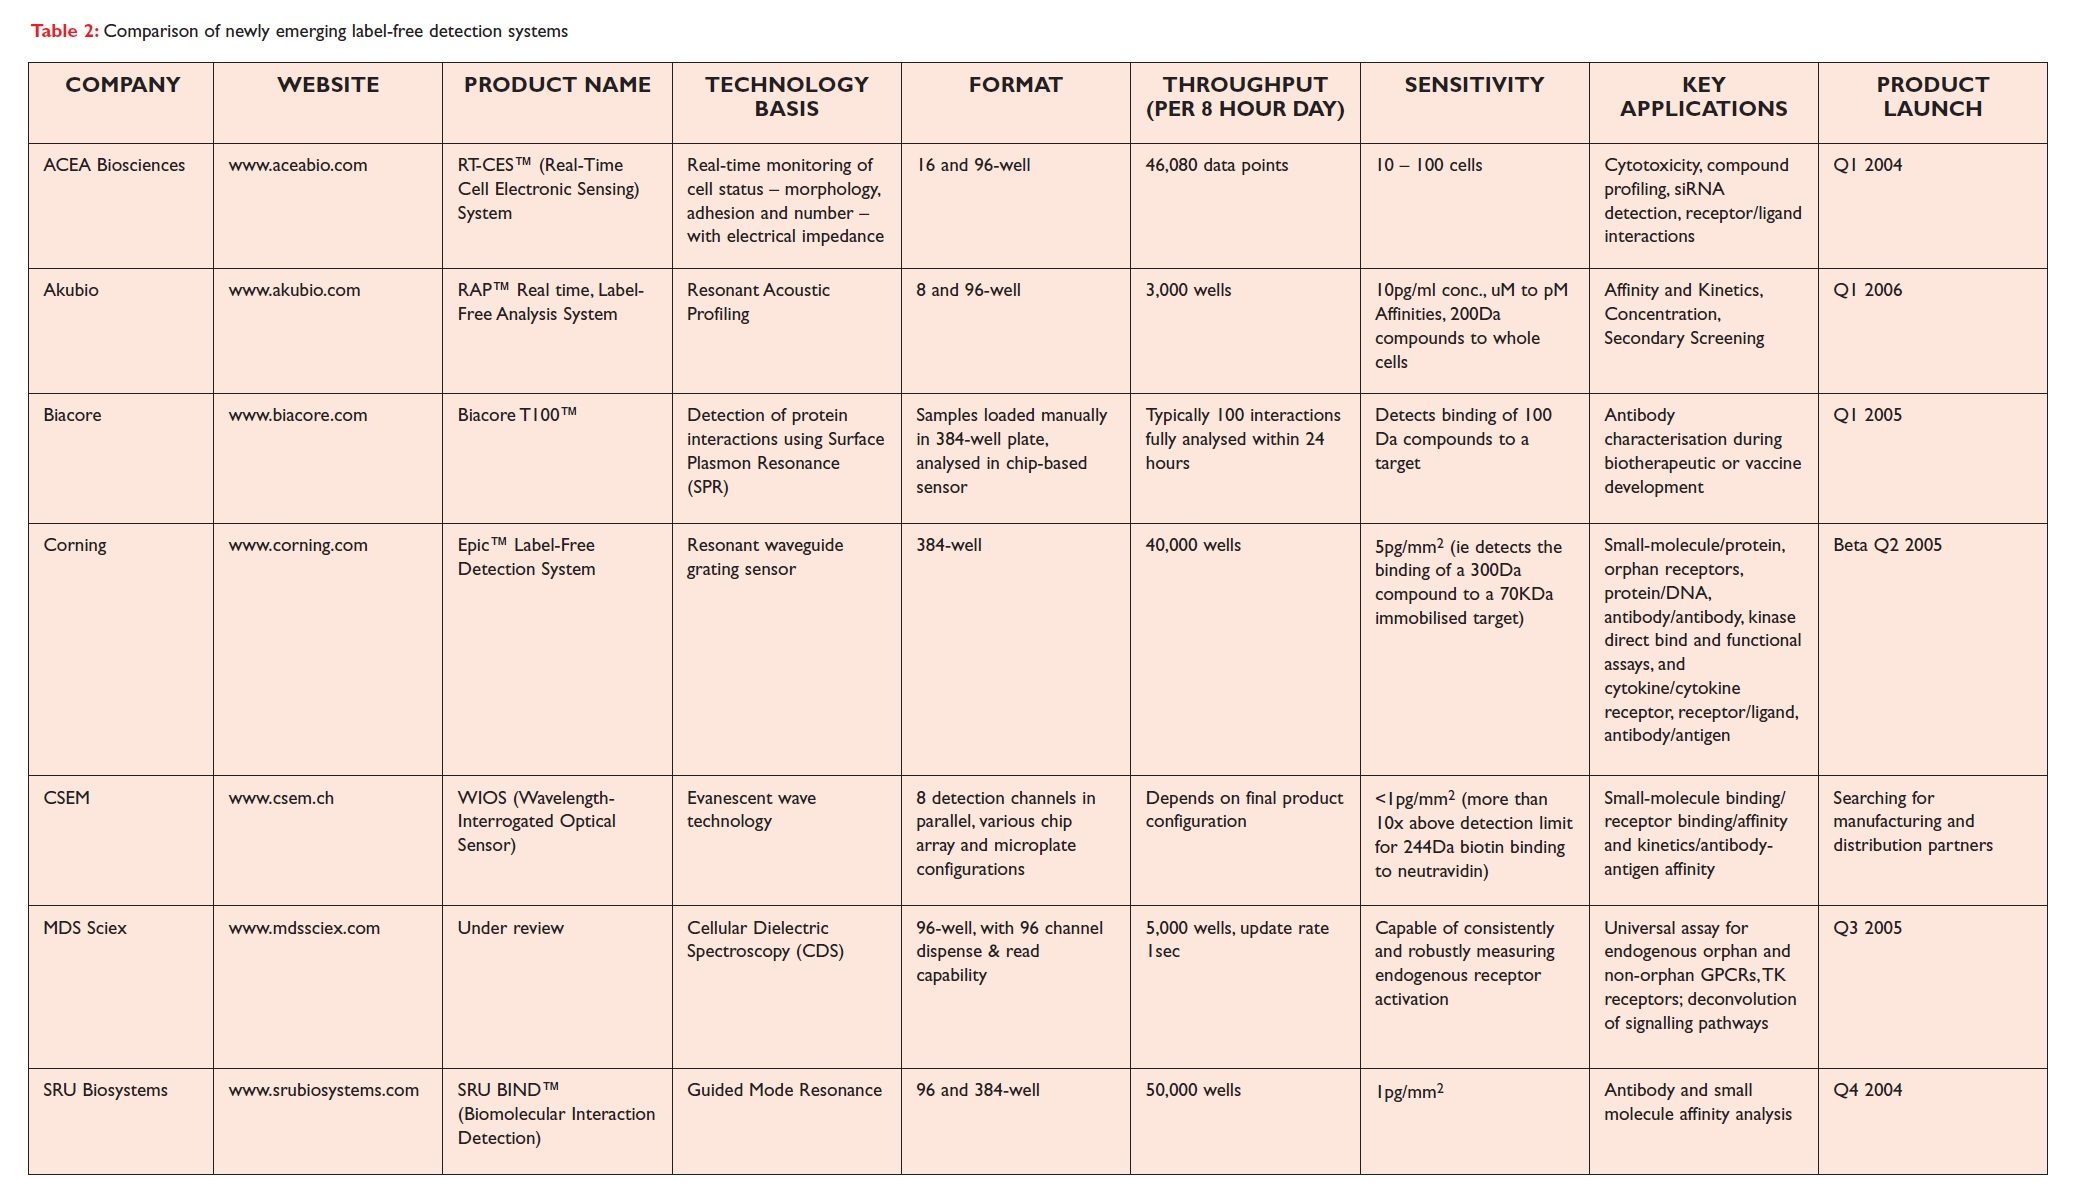 Table 2 Comparison of newly emerging label-free detection systems